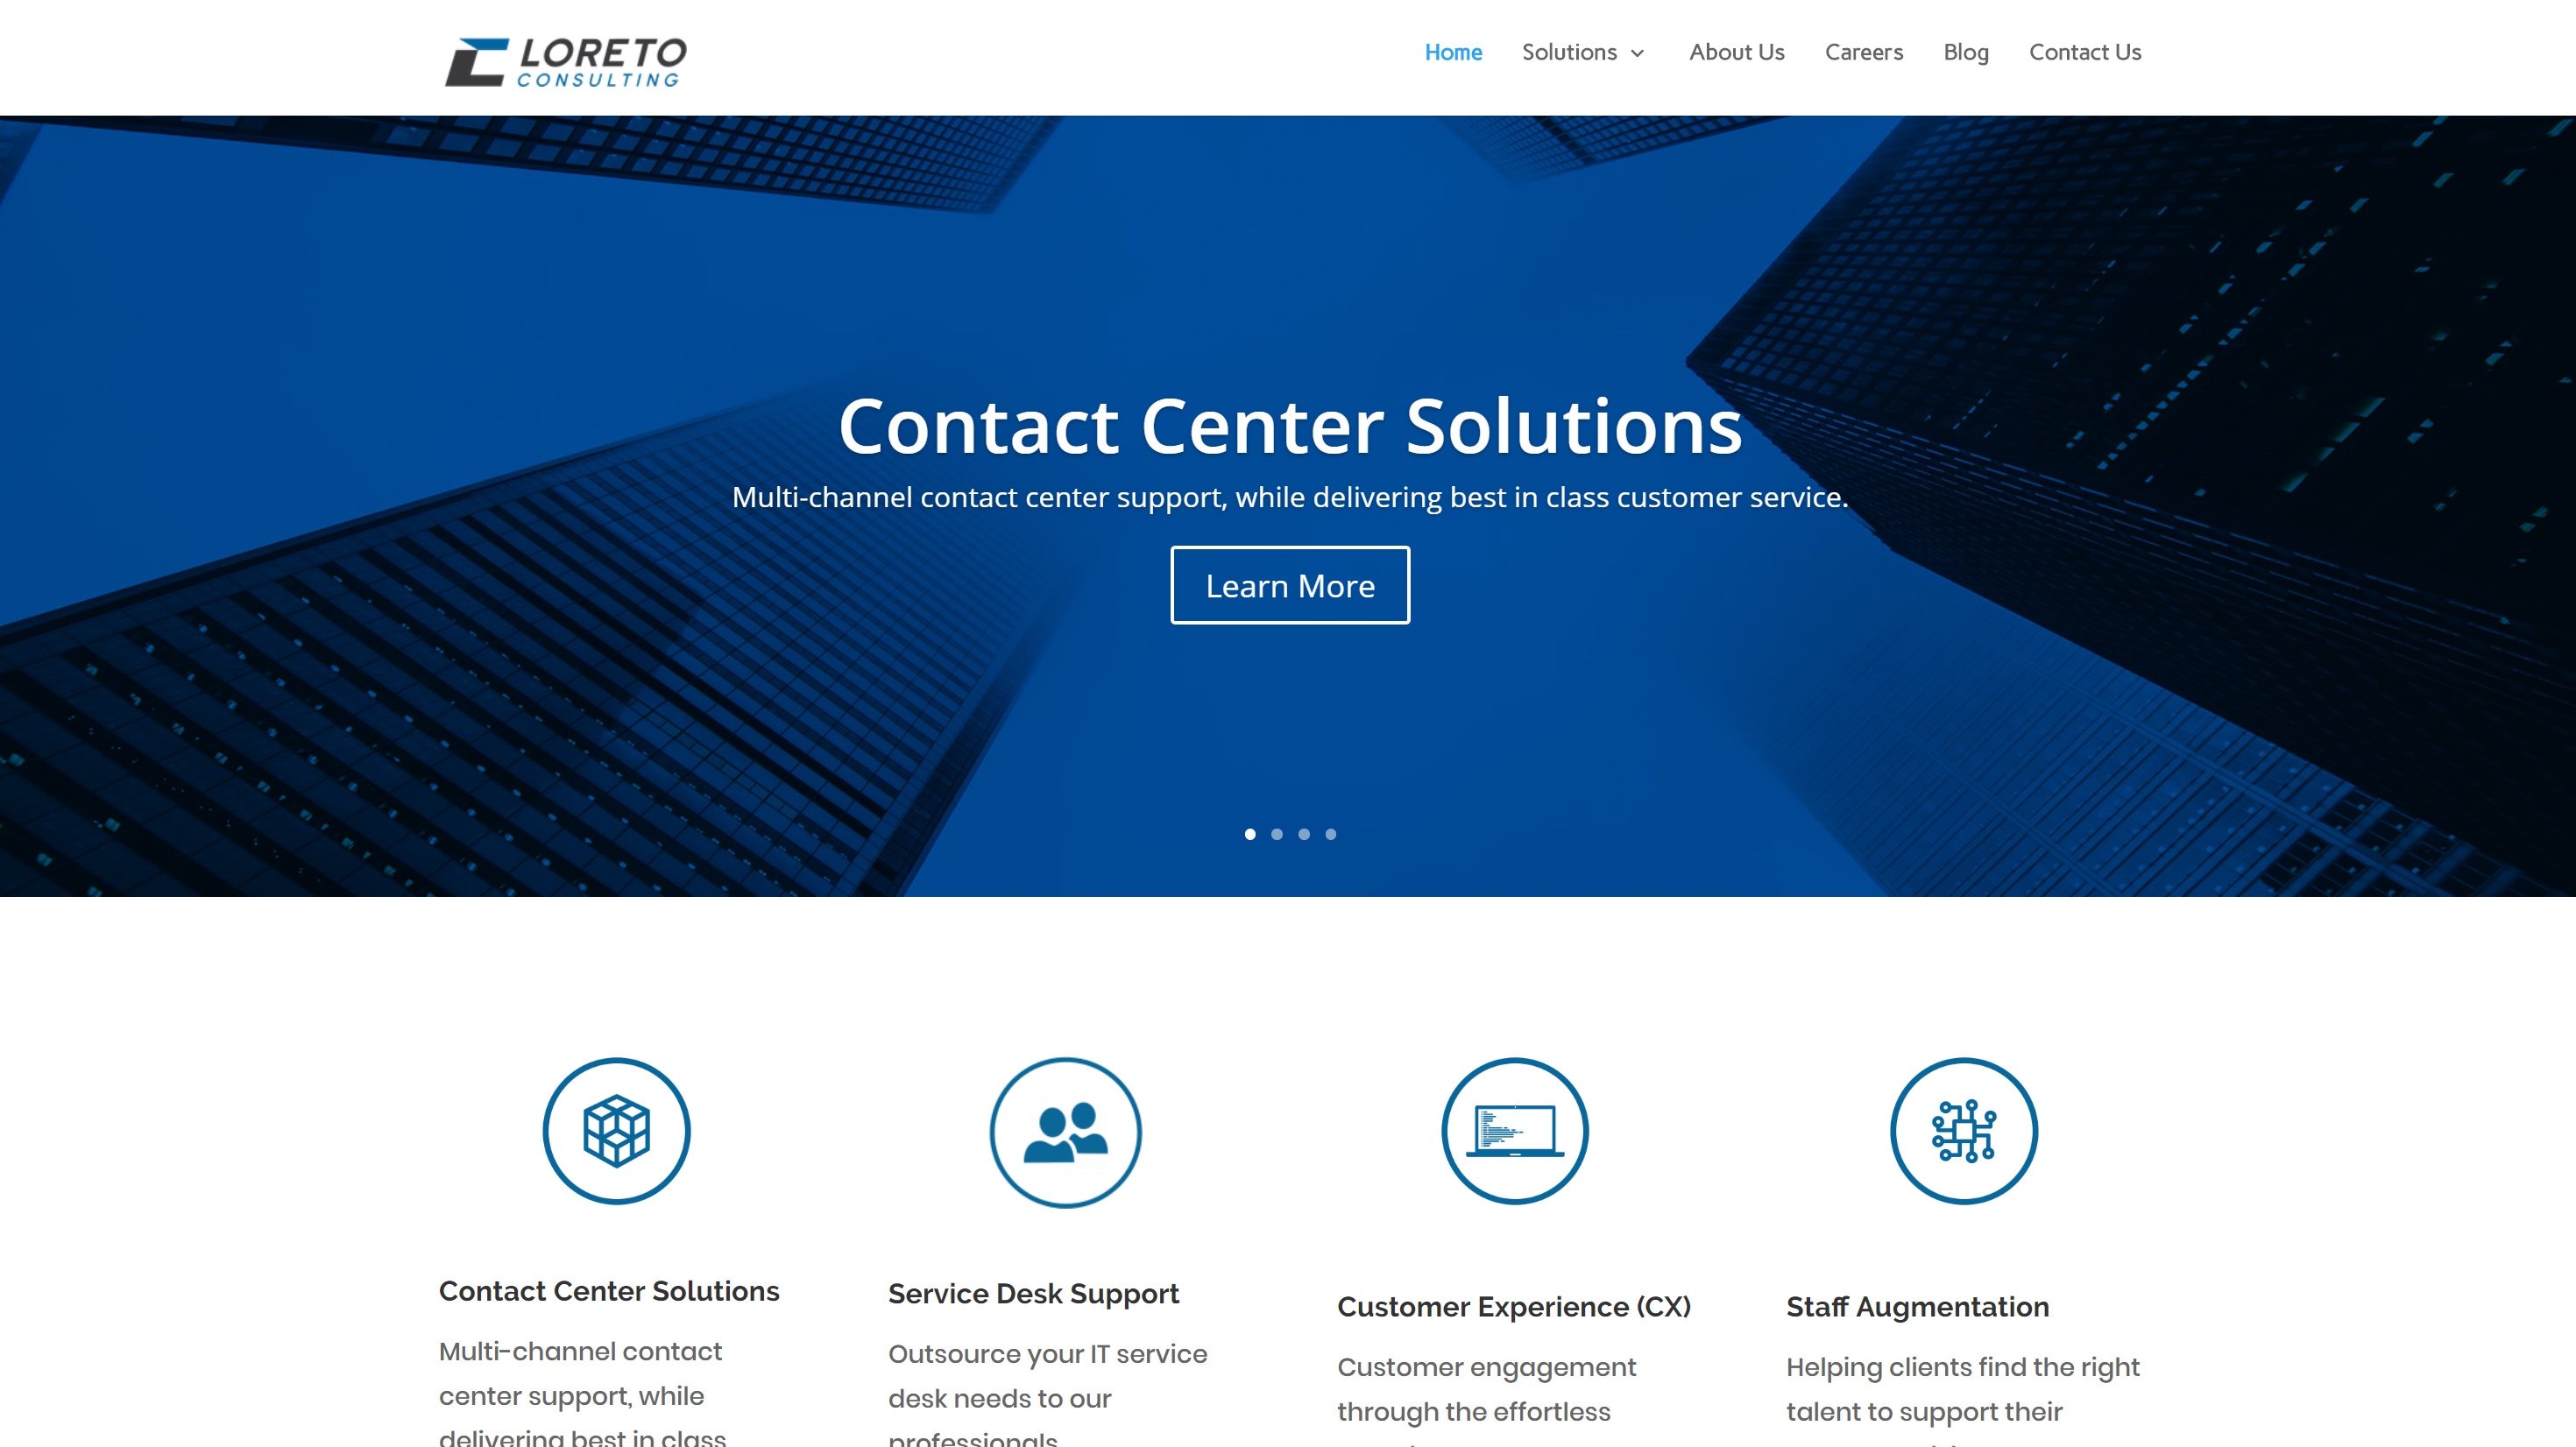 Loreto Consulting Website